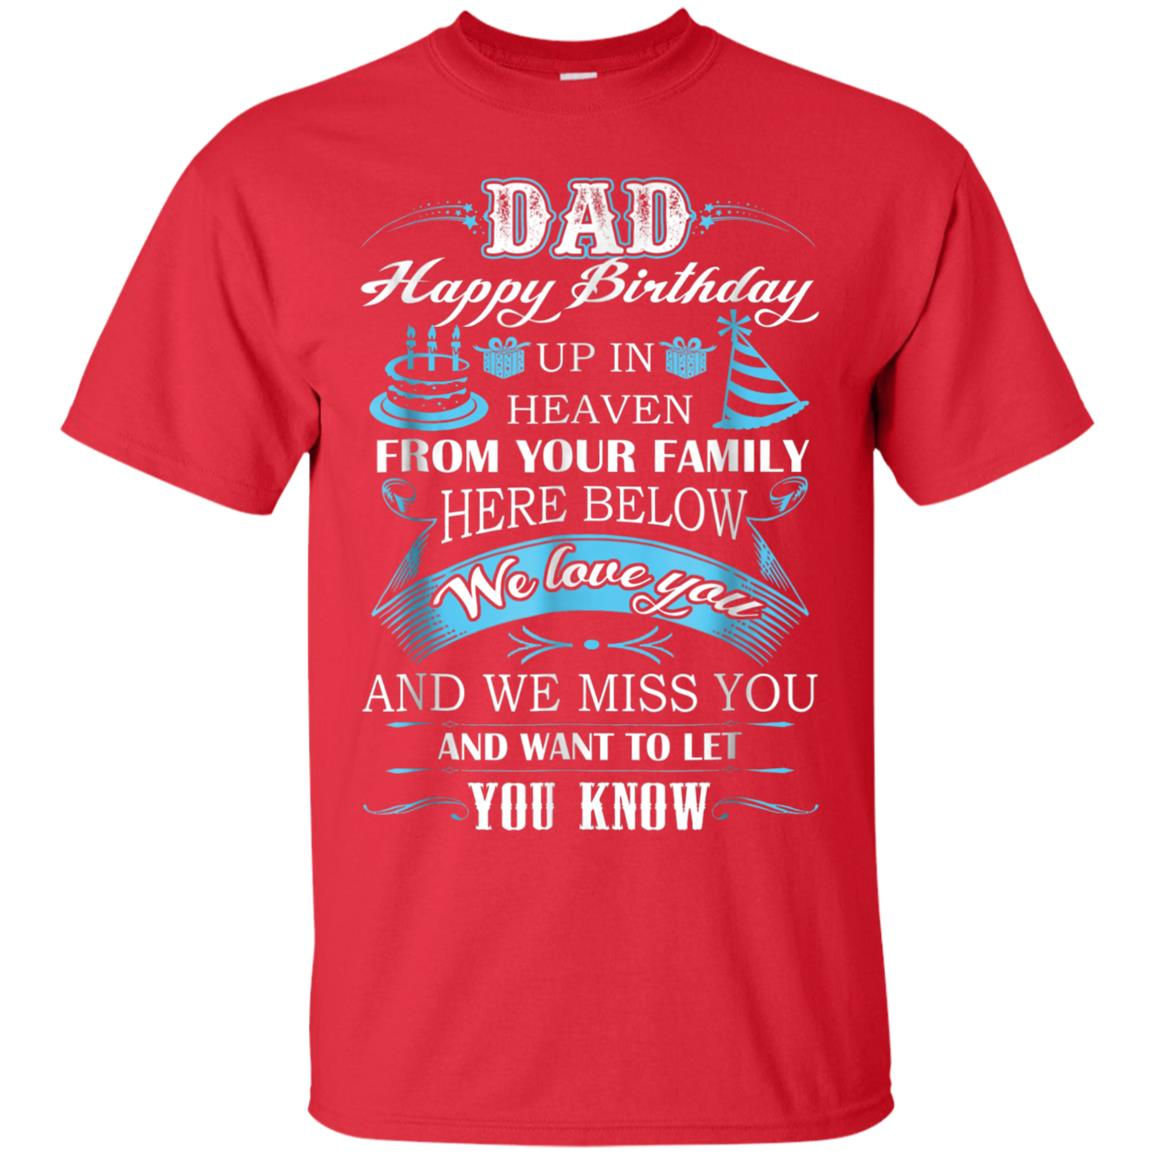 4a98373e Awesome happy birthday my dad in heaven t shirt - 99promocode